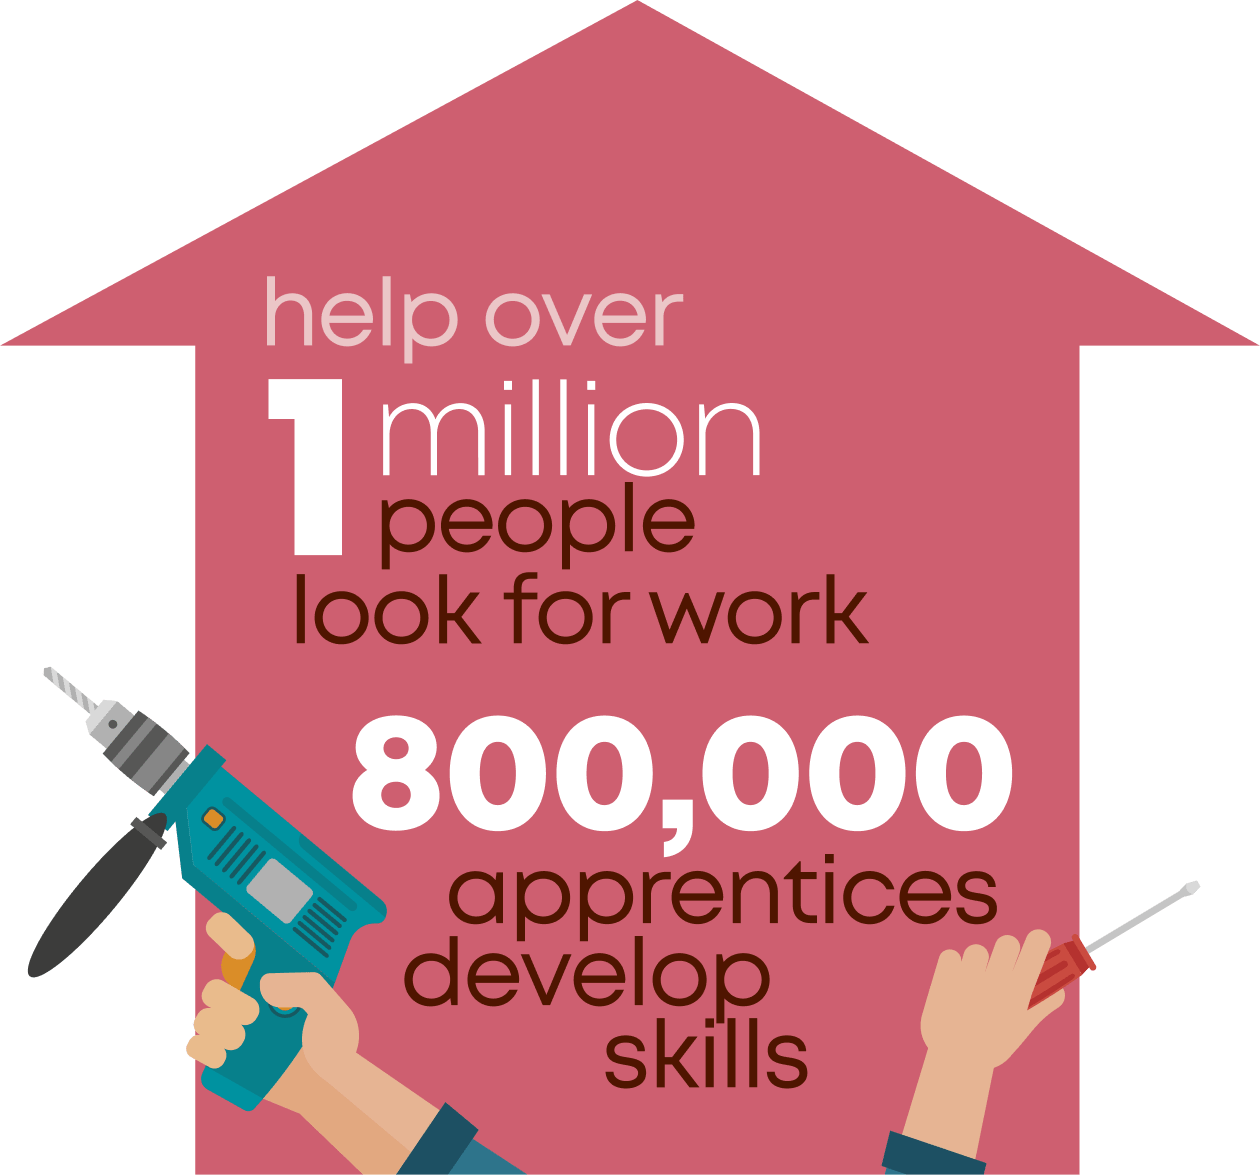 help over 1 million people look for work. 800000 apprentices develop skills